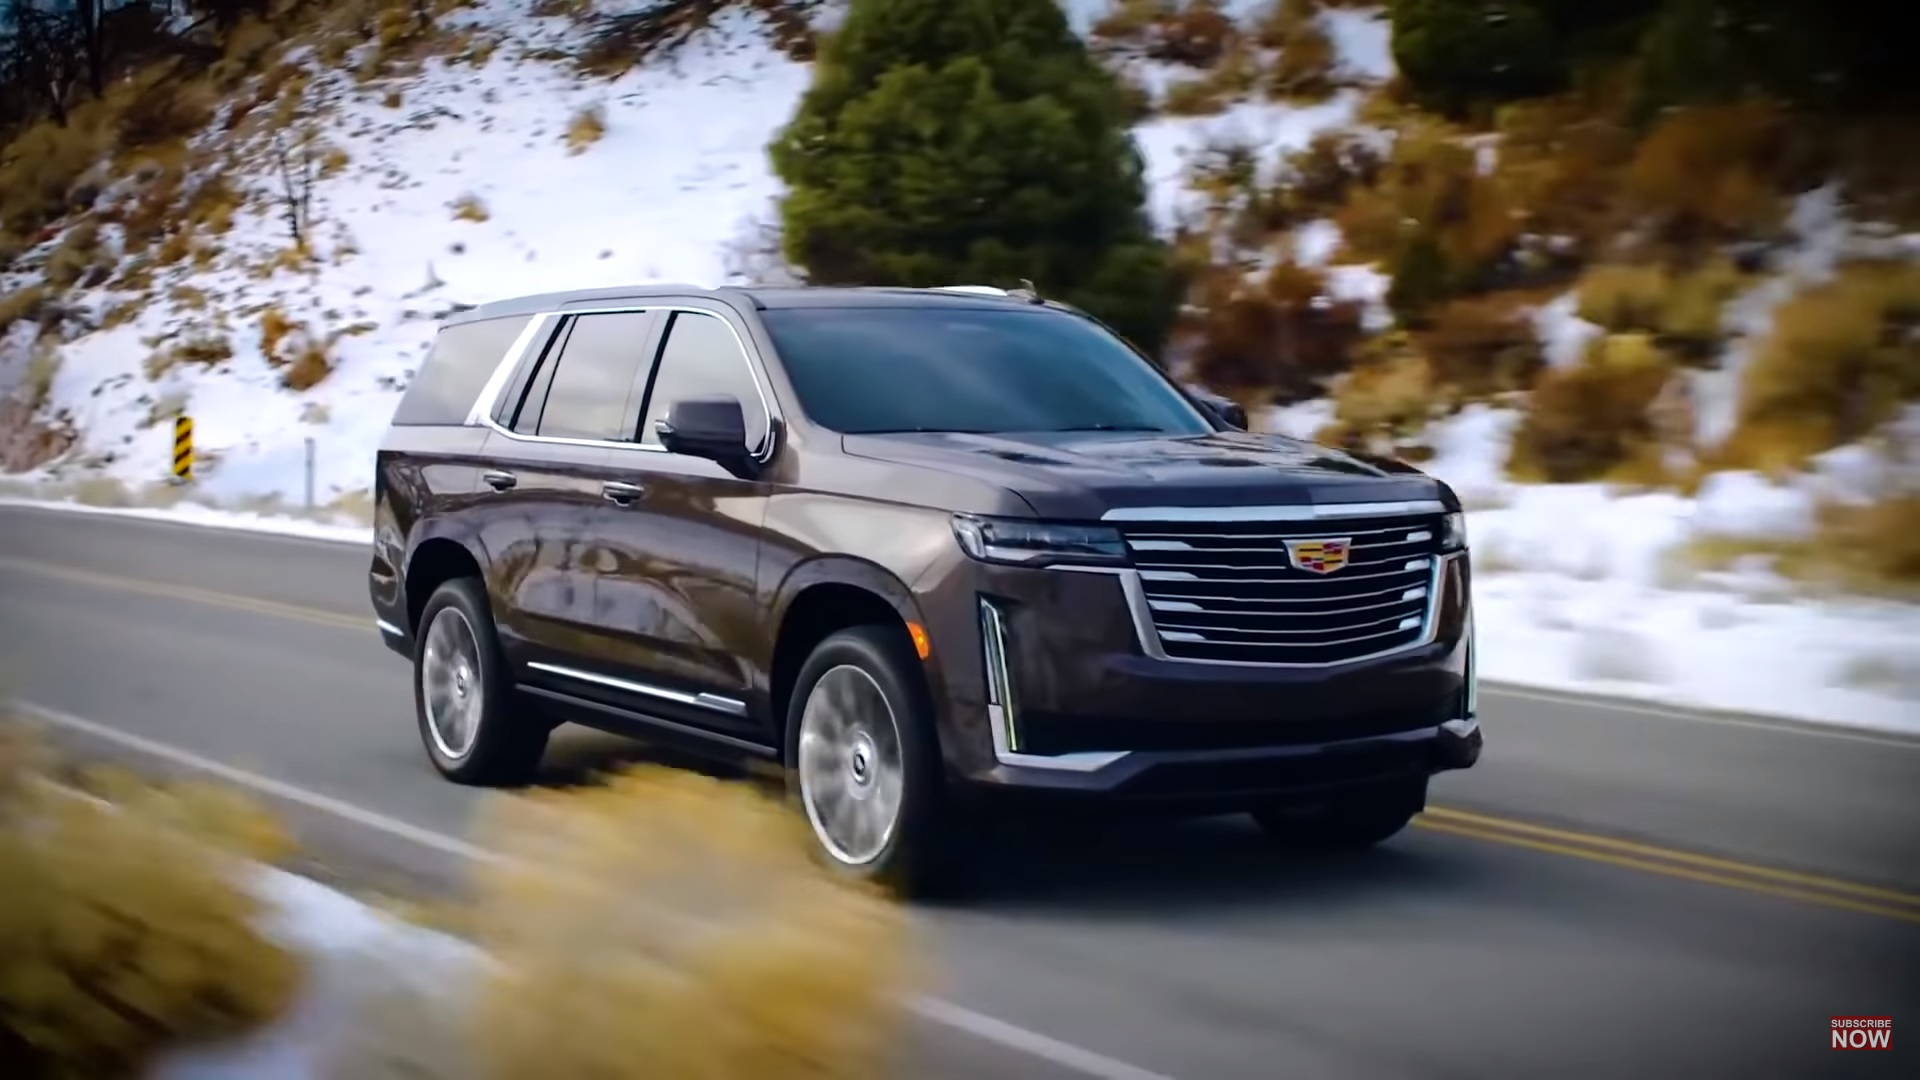 A New Video Showcases Every Aspect of the 5 Cadillac Escalade